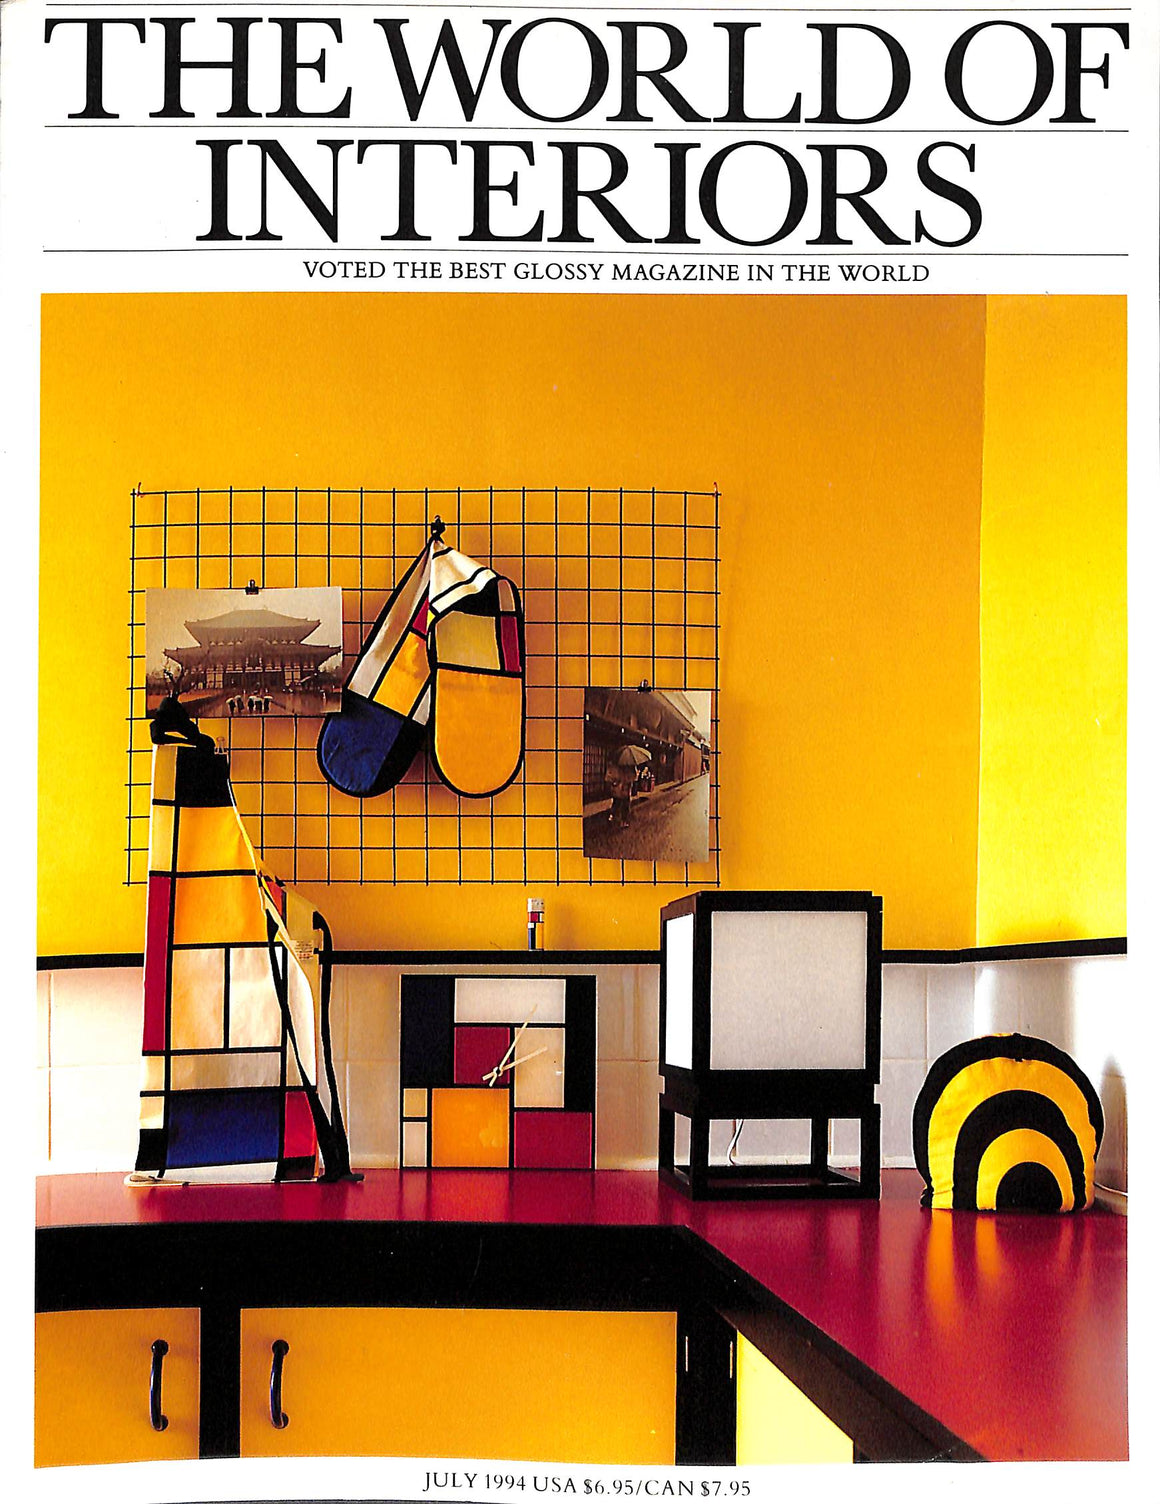 The World of Interiors: July 1994 (Sold!)